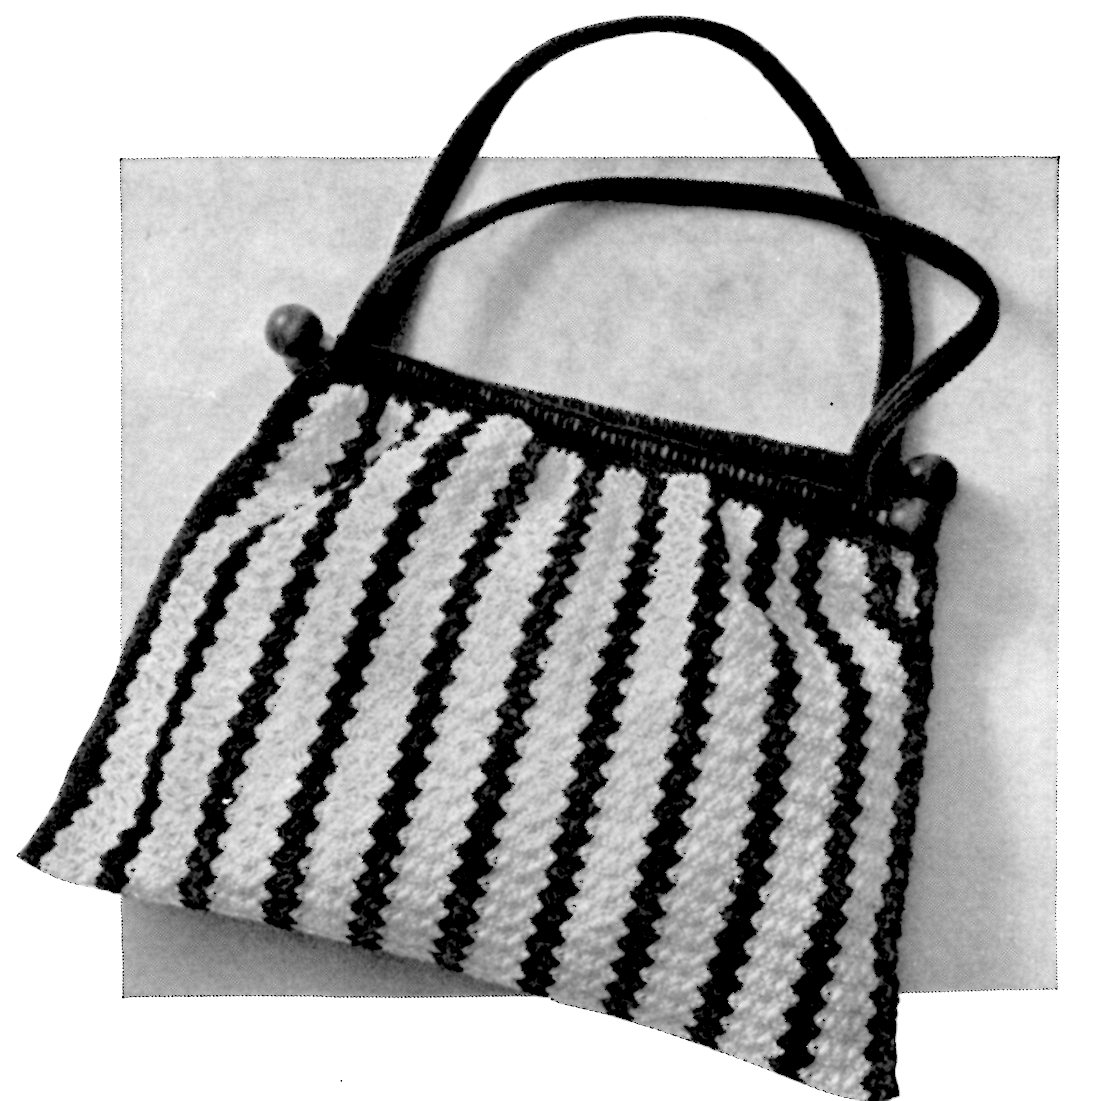 Knitting Pattern For Book Bag : Free Crochet Bag Pattern to Hold Your Knitting A Crocheted Knitting Bag - Vin...